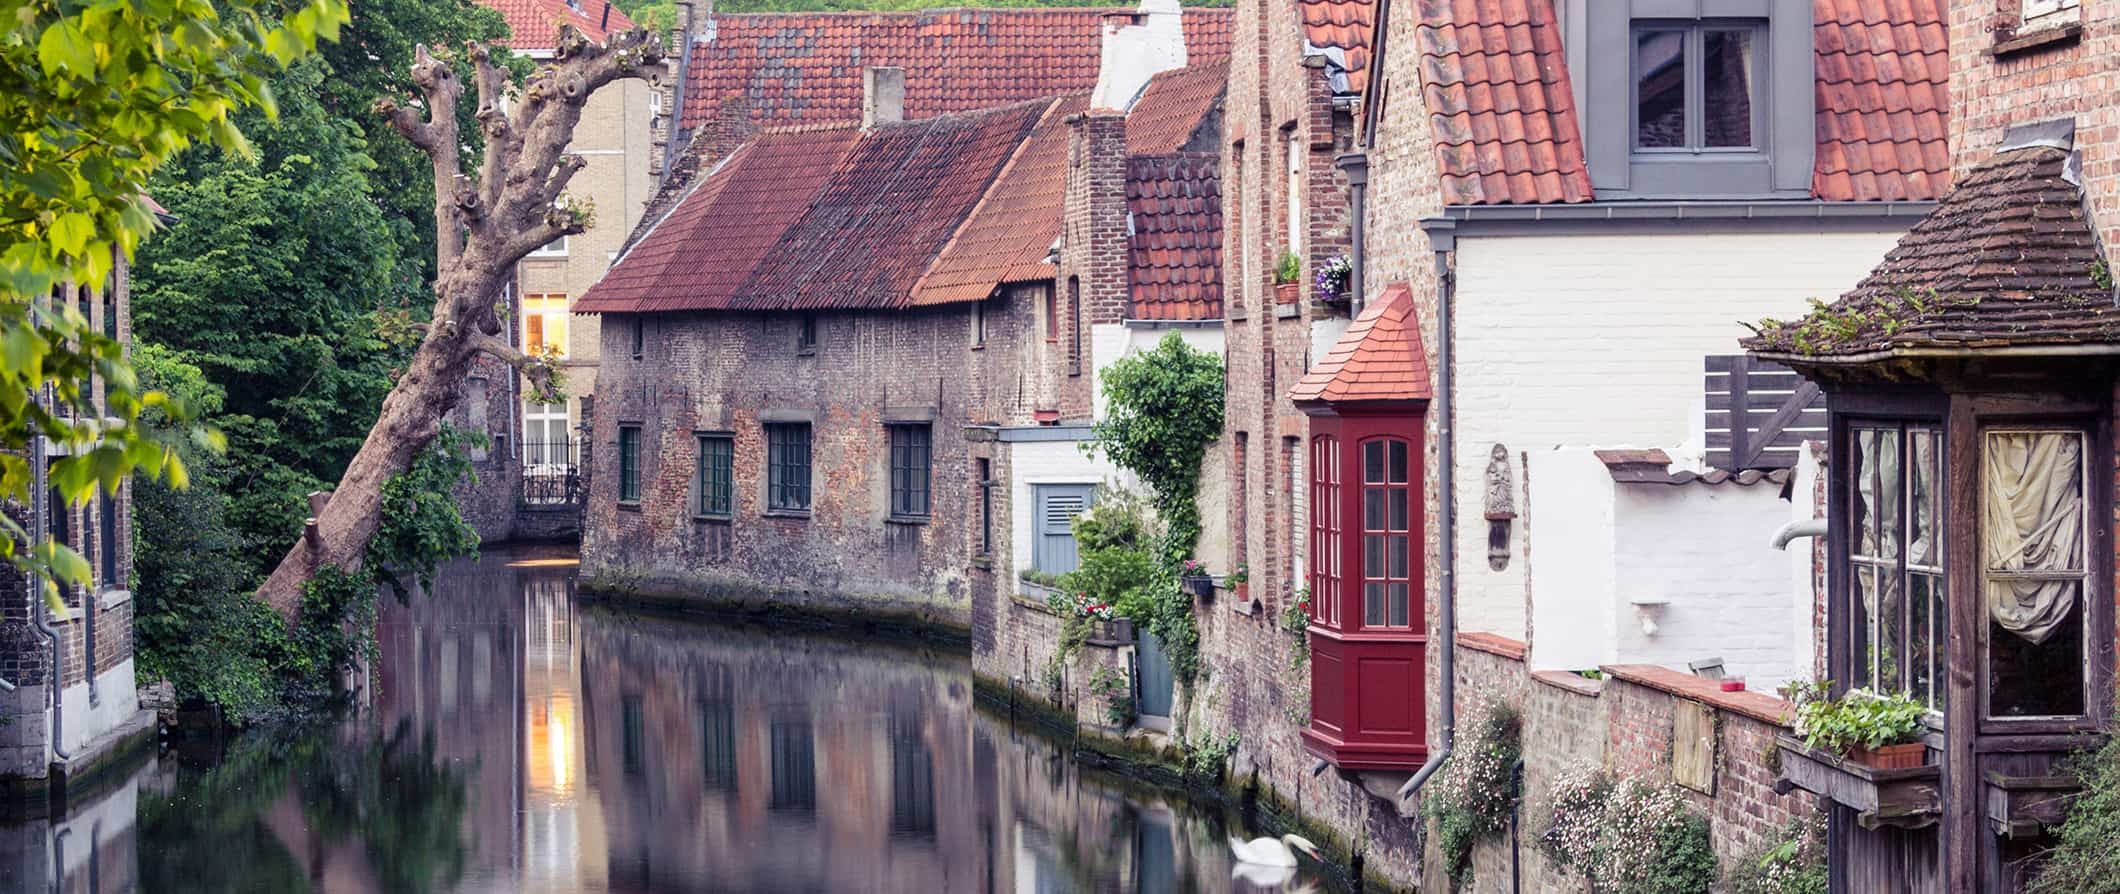 the canals in Bruges